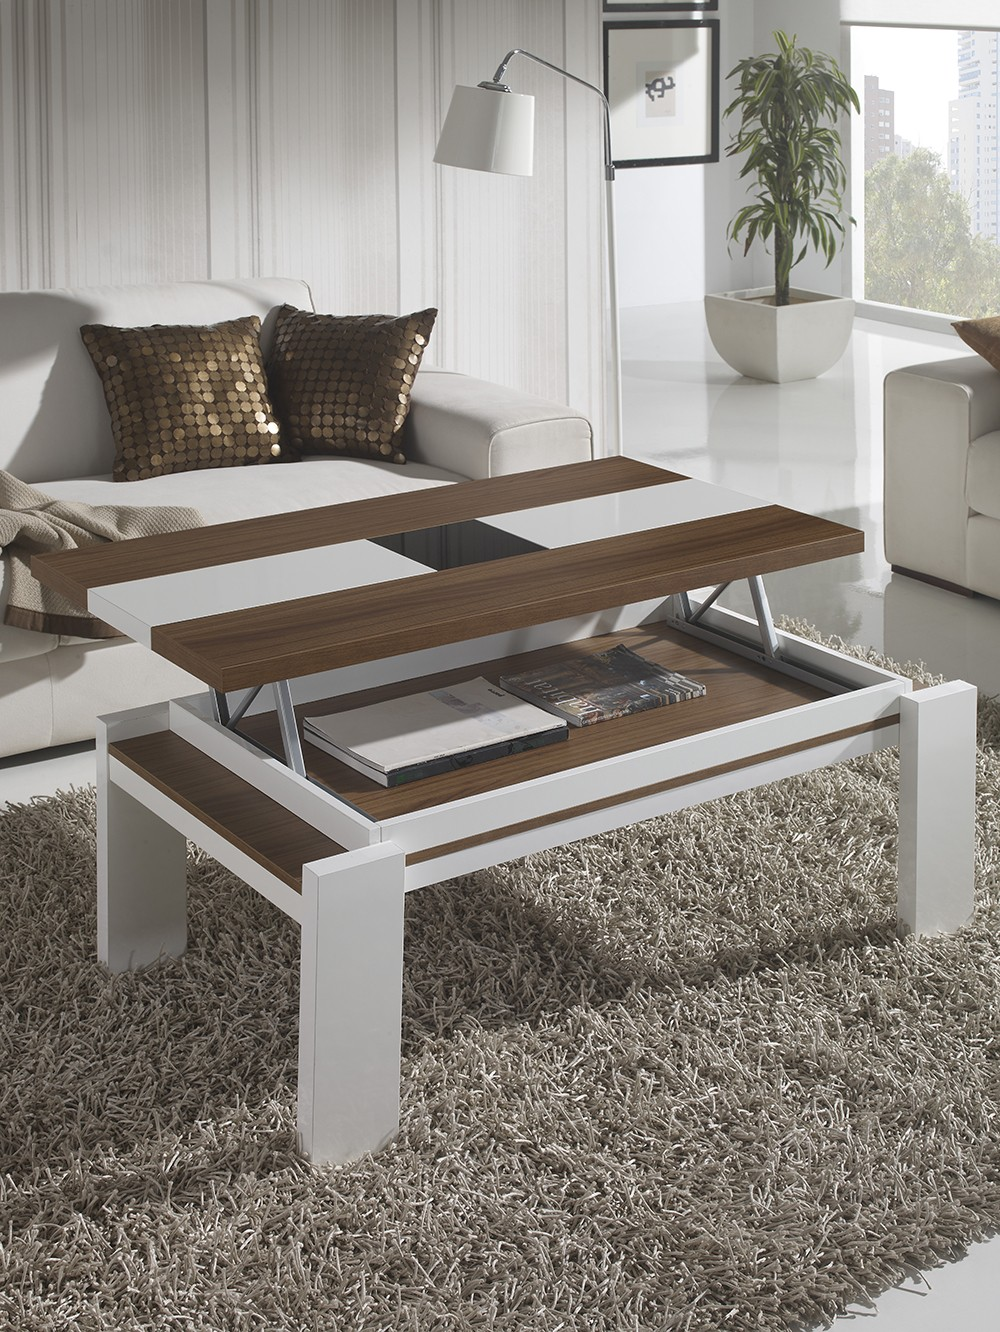 Table basse qui leve - Verin pour table relevable ...